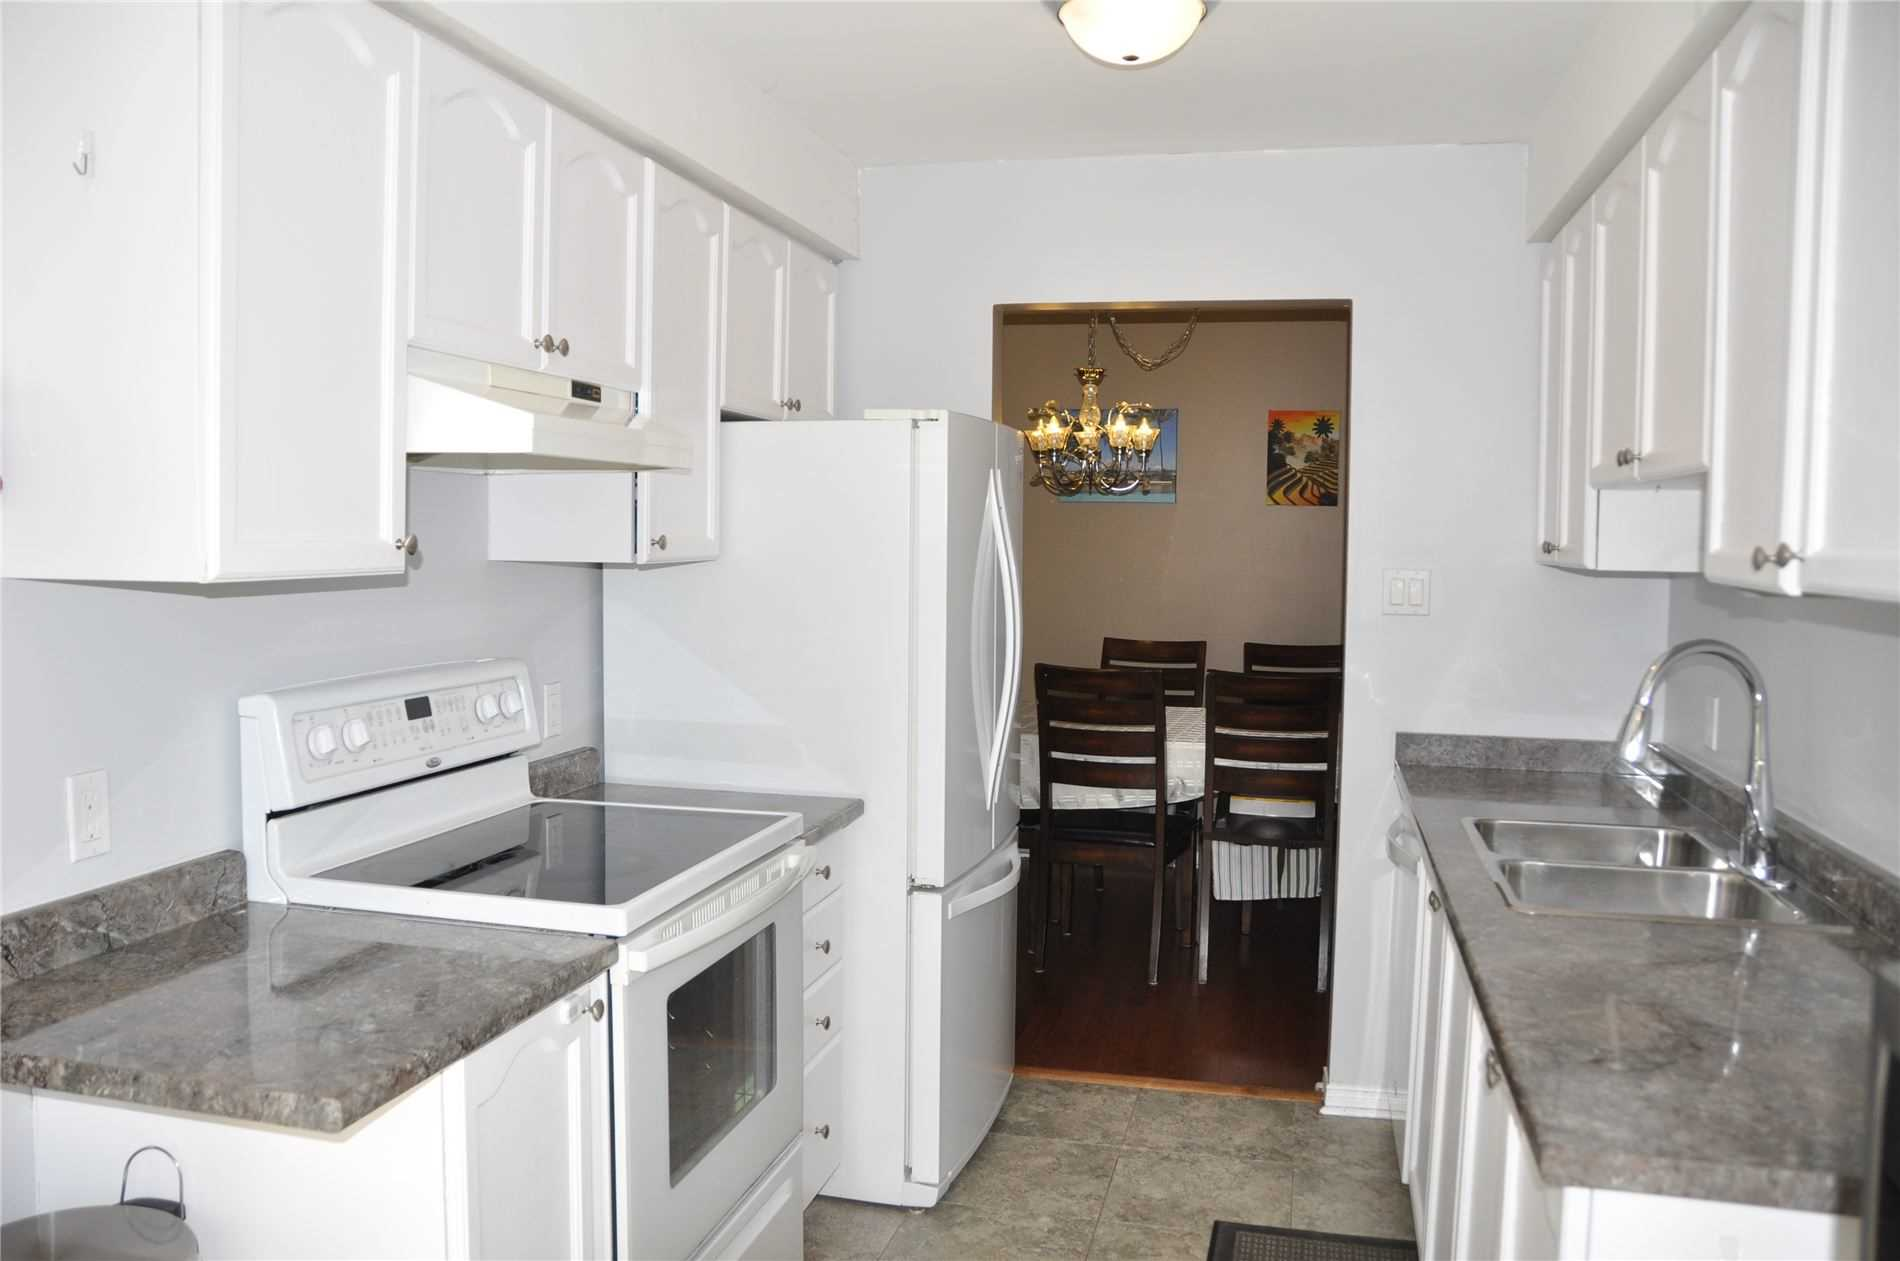 Image 8 of 12 showing inside of 3 Bedroom Condo Townhouse 2-Storey for Sale at 22 Macintyre Lane Unit# 11, Ajax L1T3X3